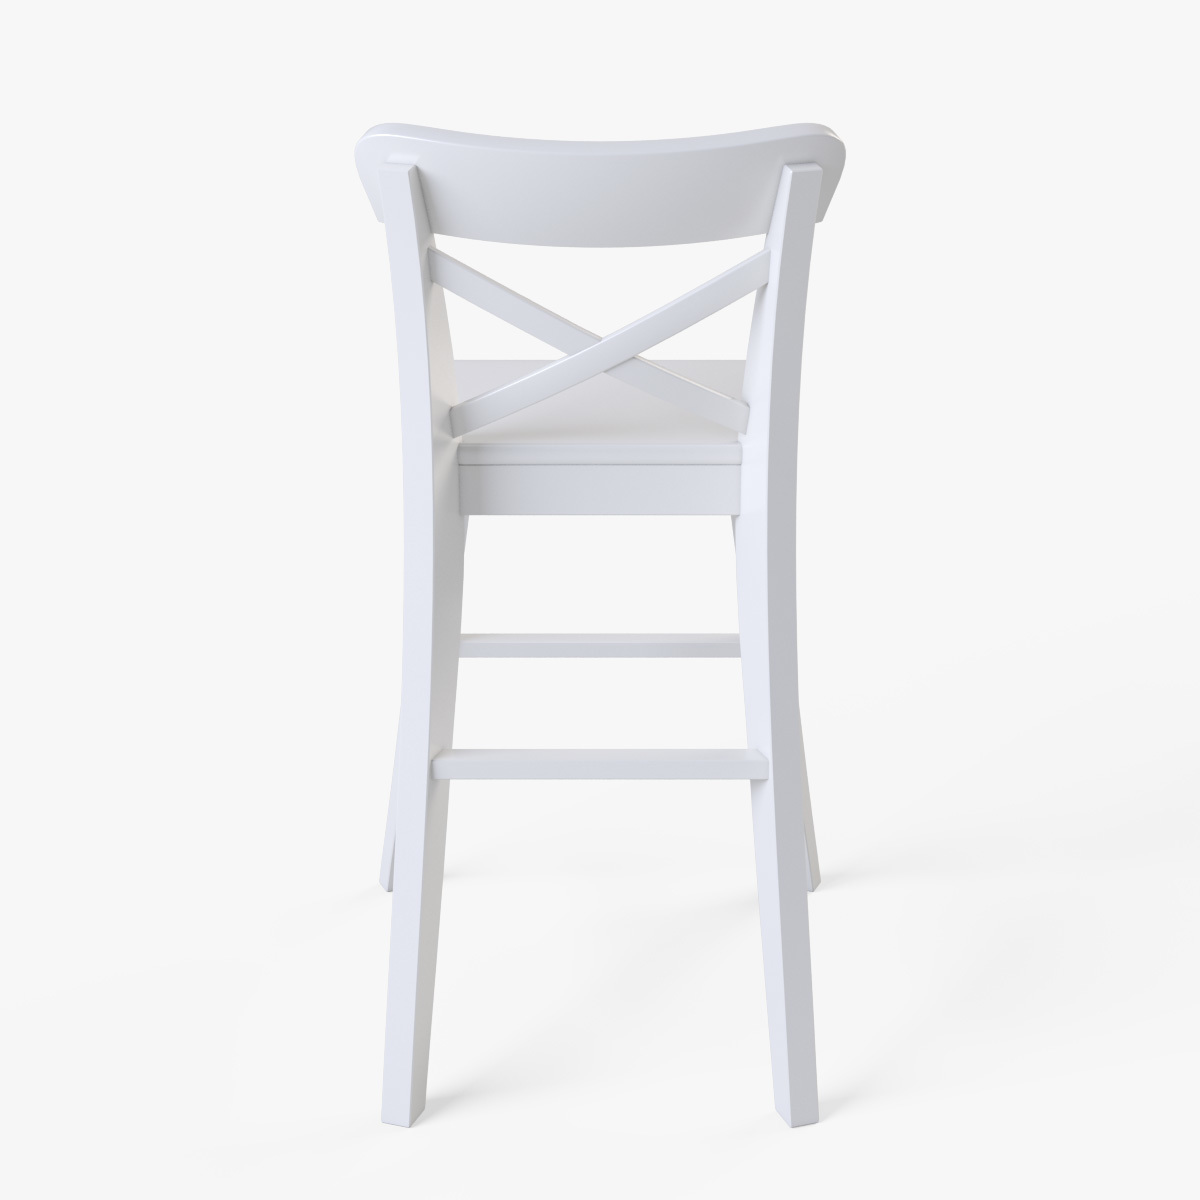 ikea junior chair parsons slipcover patterns ingolf white by markelos 3docean